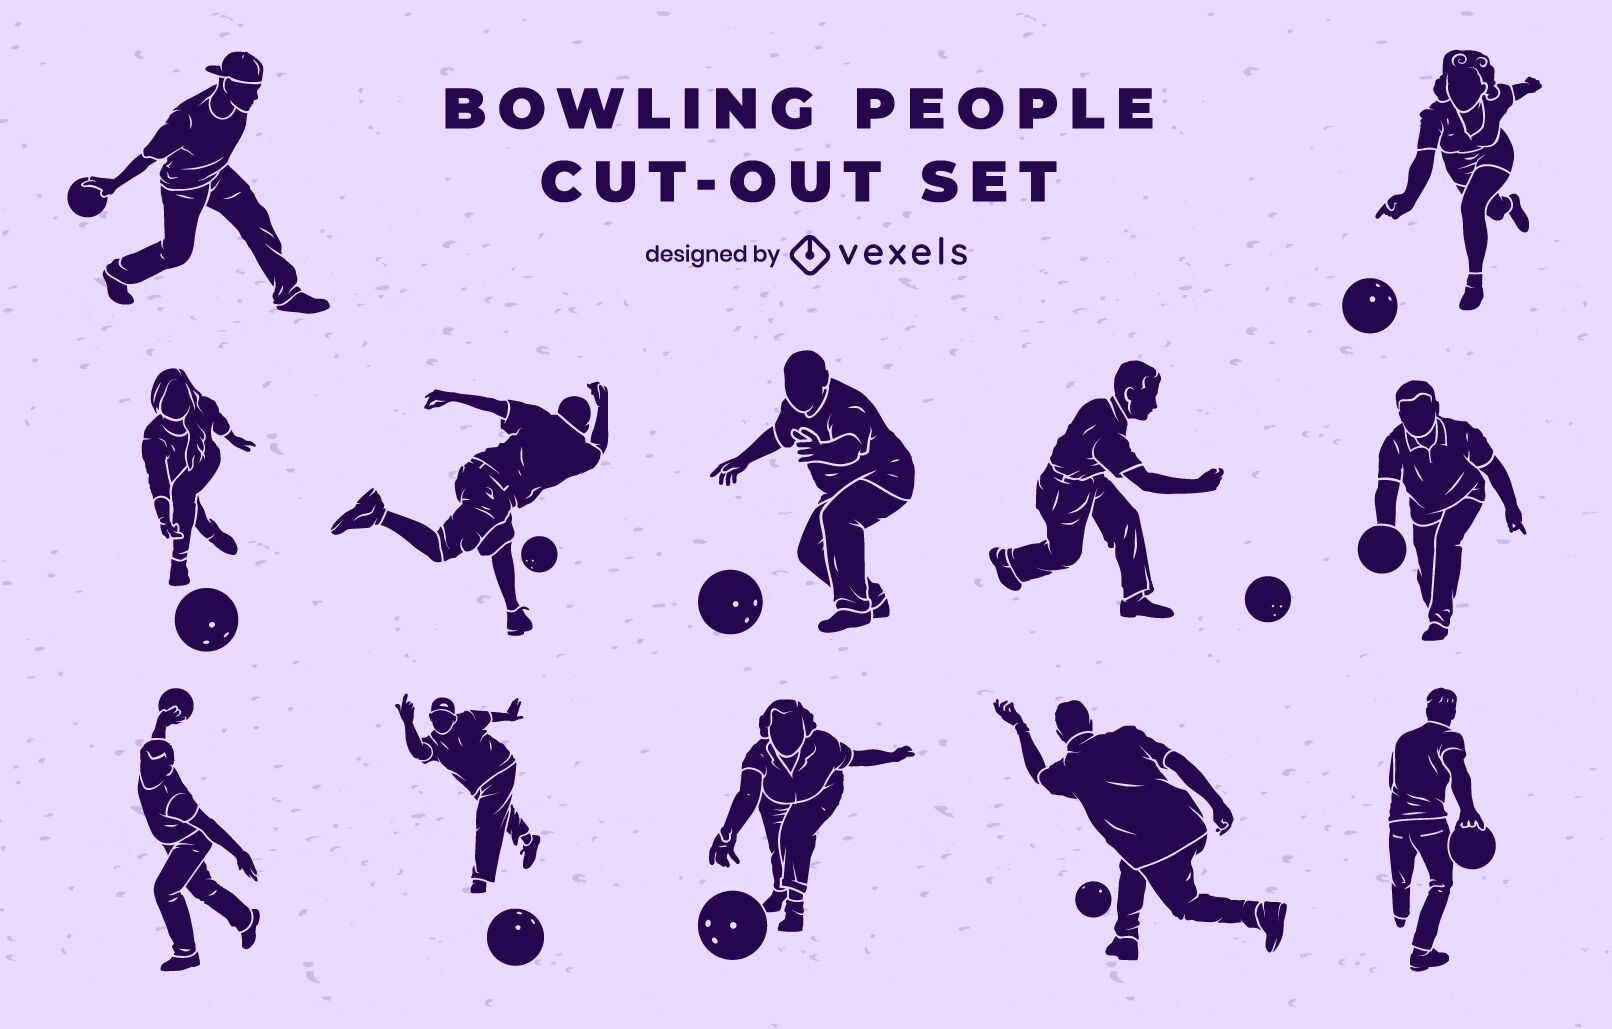 Bowling people cut out set